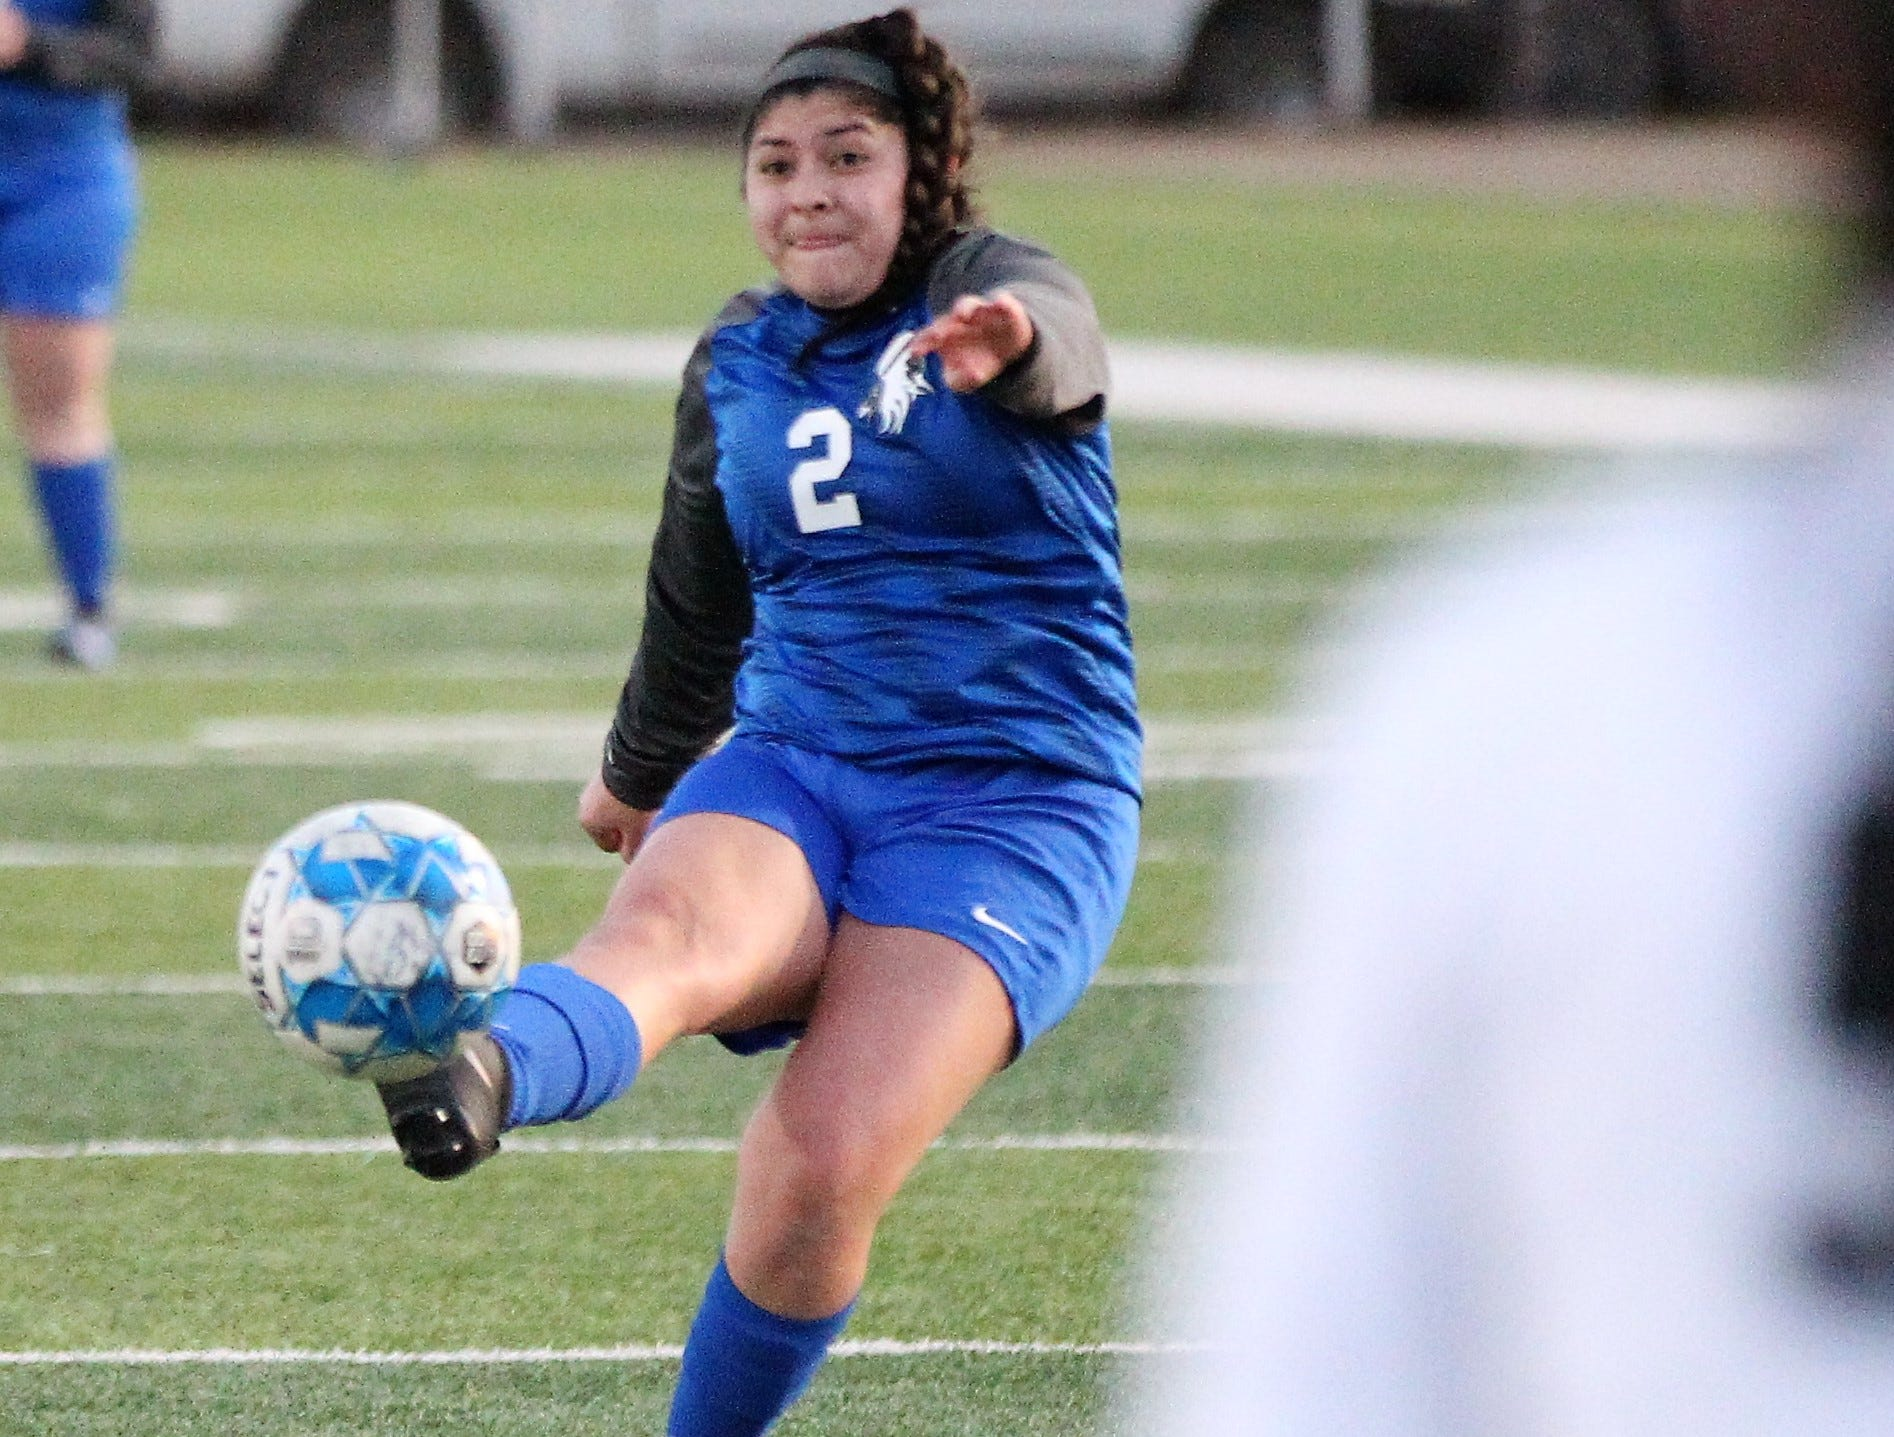 Lake View's Abigail Borrego fires a shot in a District 4-4A soccer match against Snyder at Old Bobcat Stadium on Tuesday, March 5, 2019.